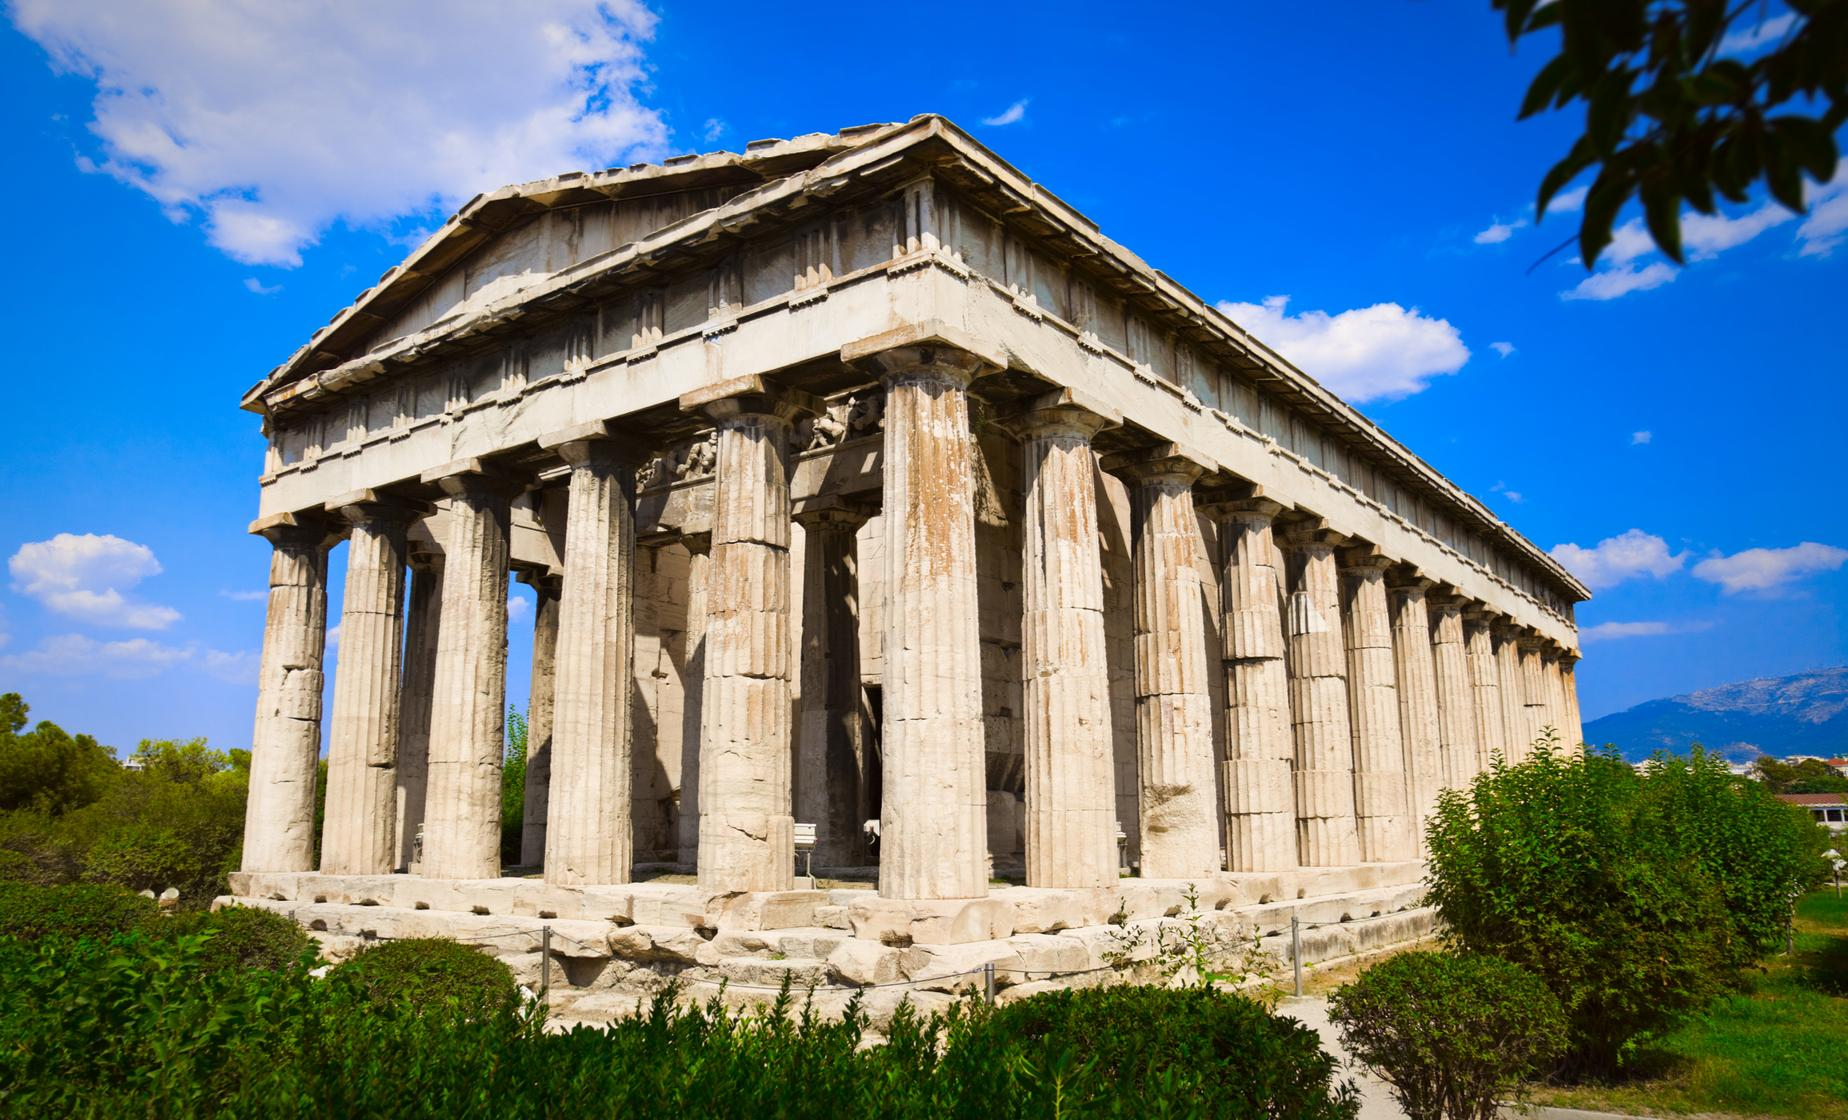 Athens by Foot Tour from downtown Athens